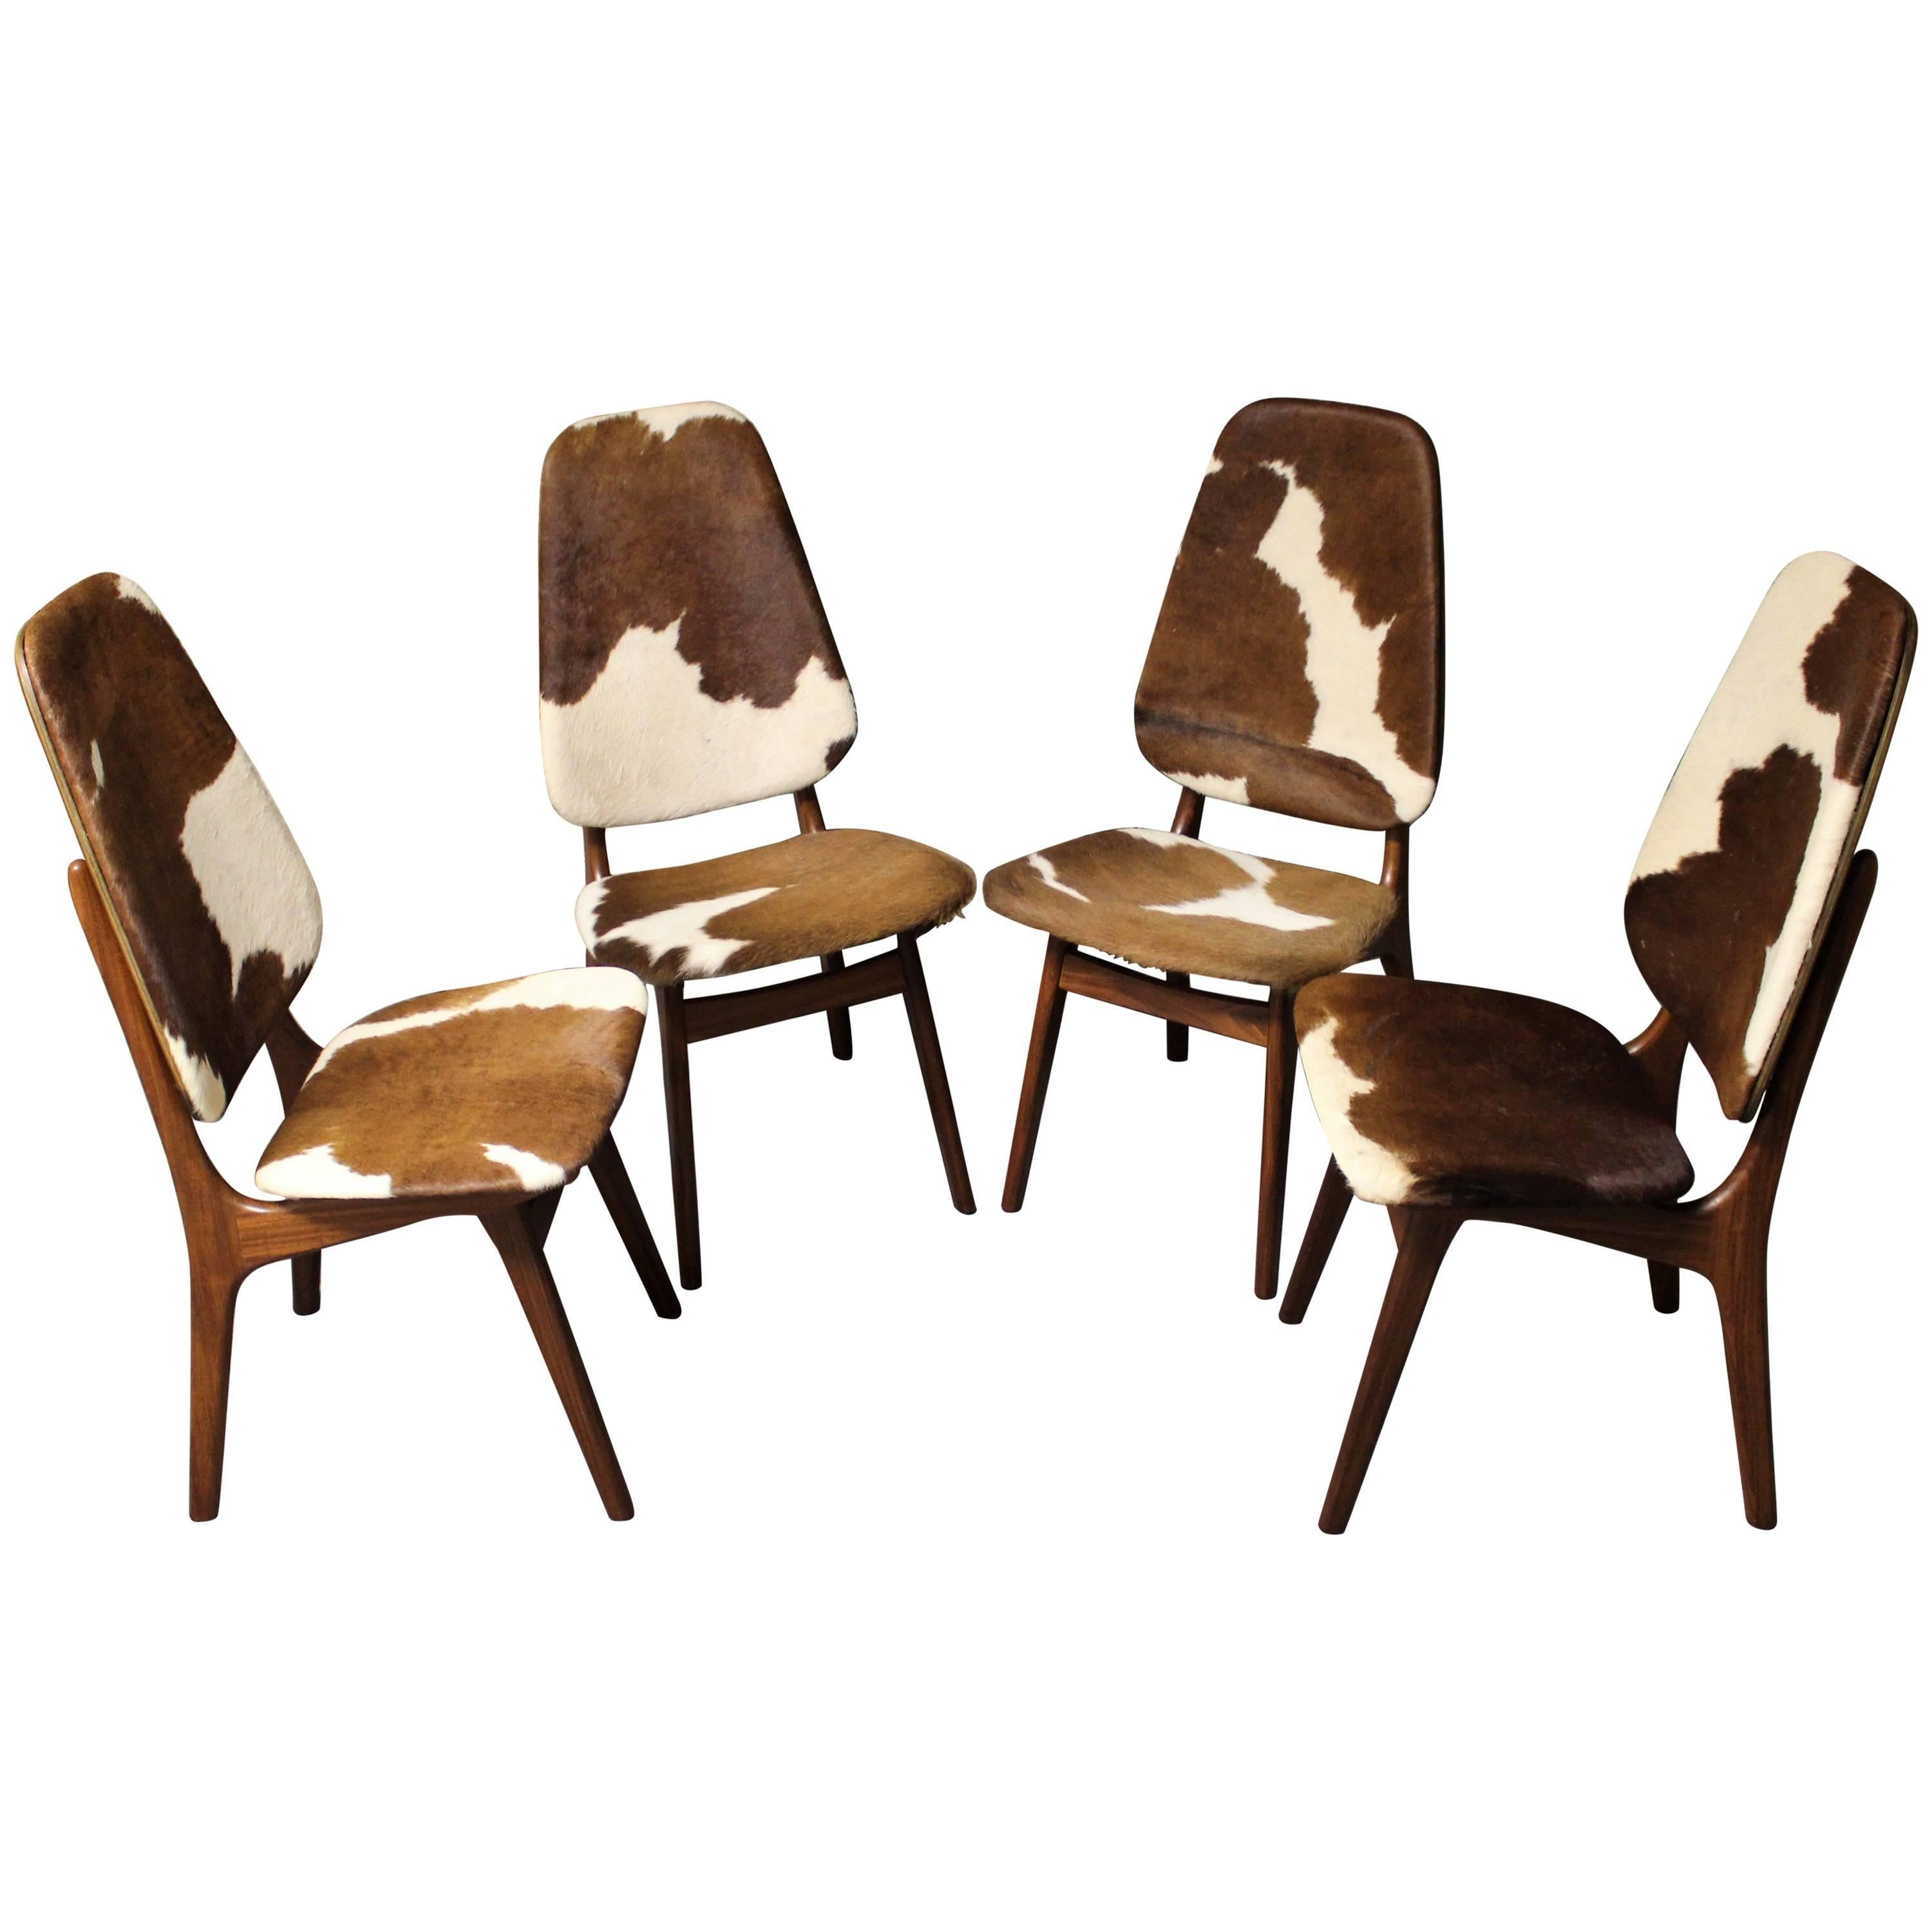 Four Arne Hovmand Olsen Danish Teak Dining Chairs With Cowhide Upholstery